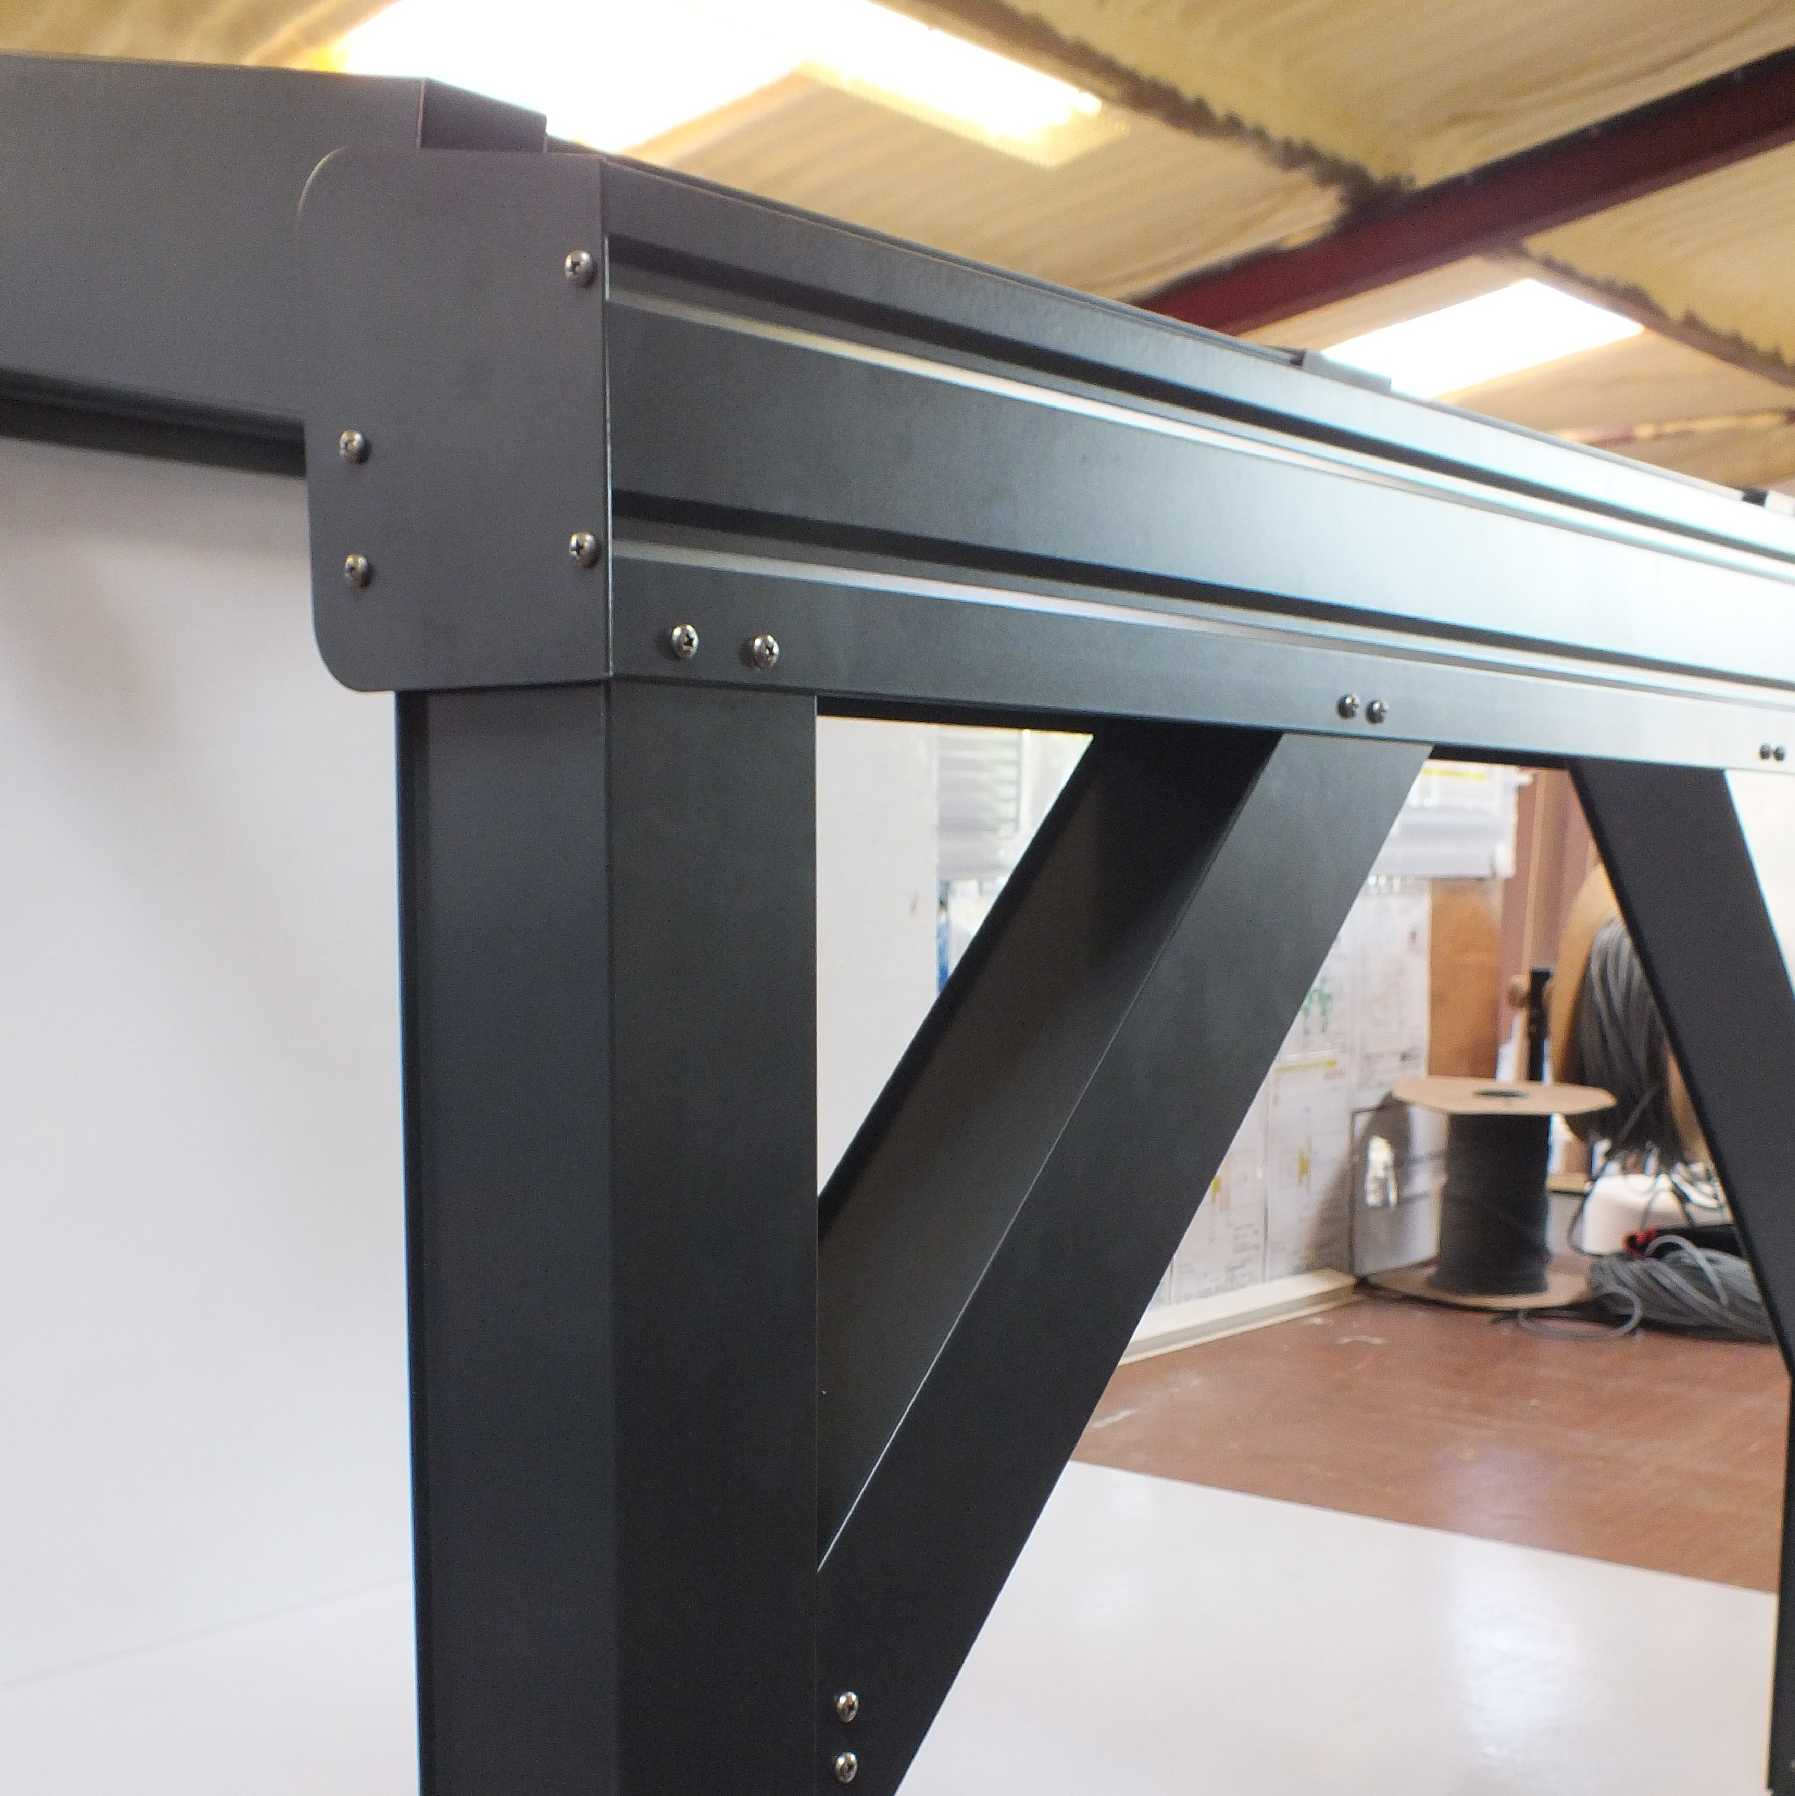 Omega Smart Lean-To Canopy, Anthracite Grey, UNGLAZED for 6mm Glazing - 7.7m (W) x 3.0m (P), (4) Supporting Posts from Omega Build